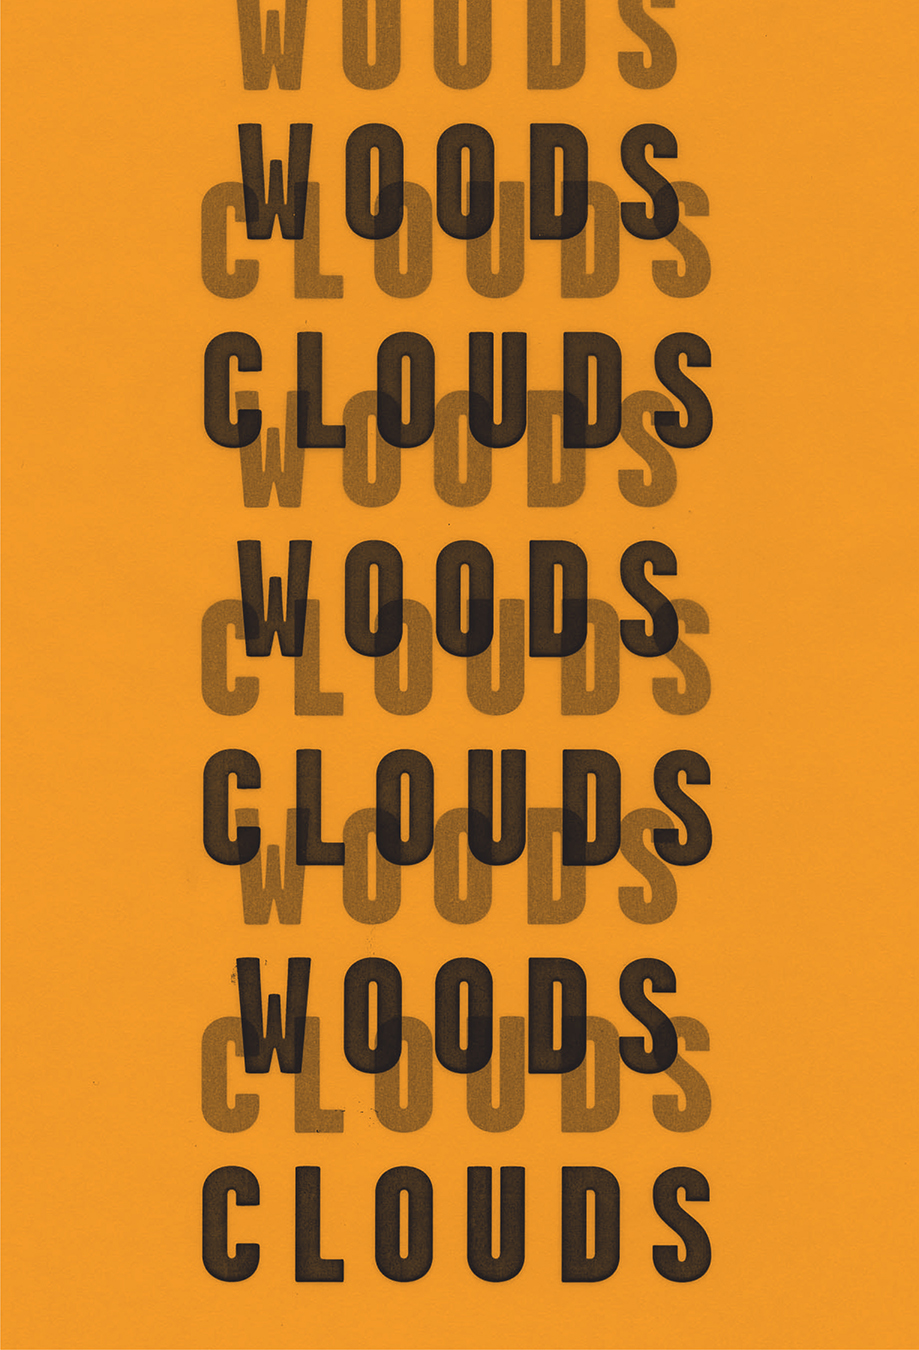 Woods and Clouds Interchangeable